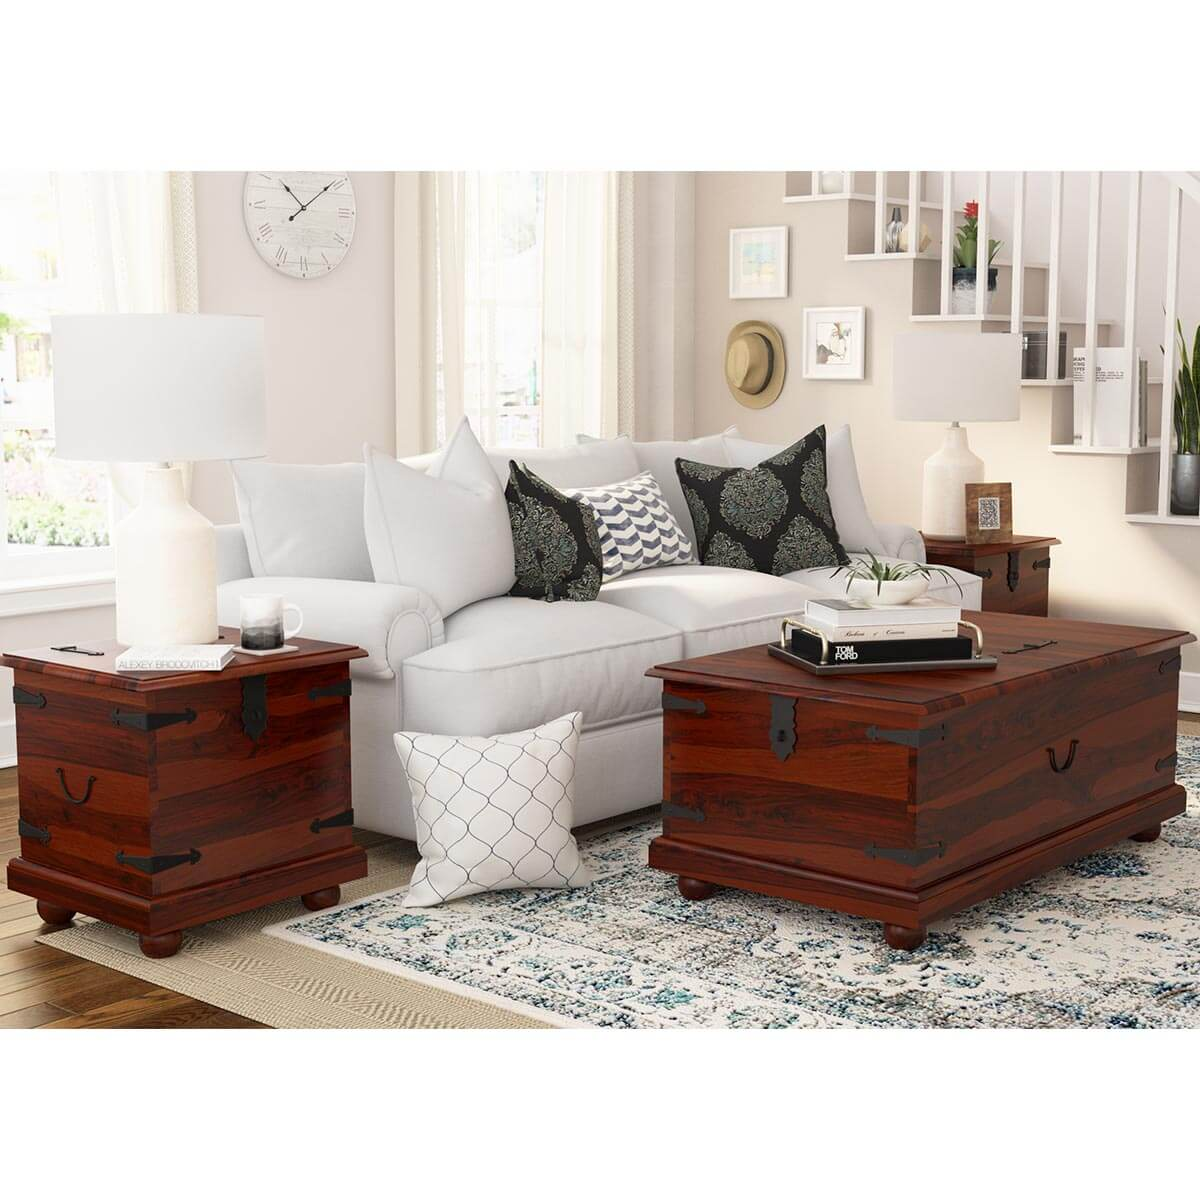 Kokanee Solid Wood Storage Trunk Coffee Table 3 Piece Set